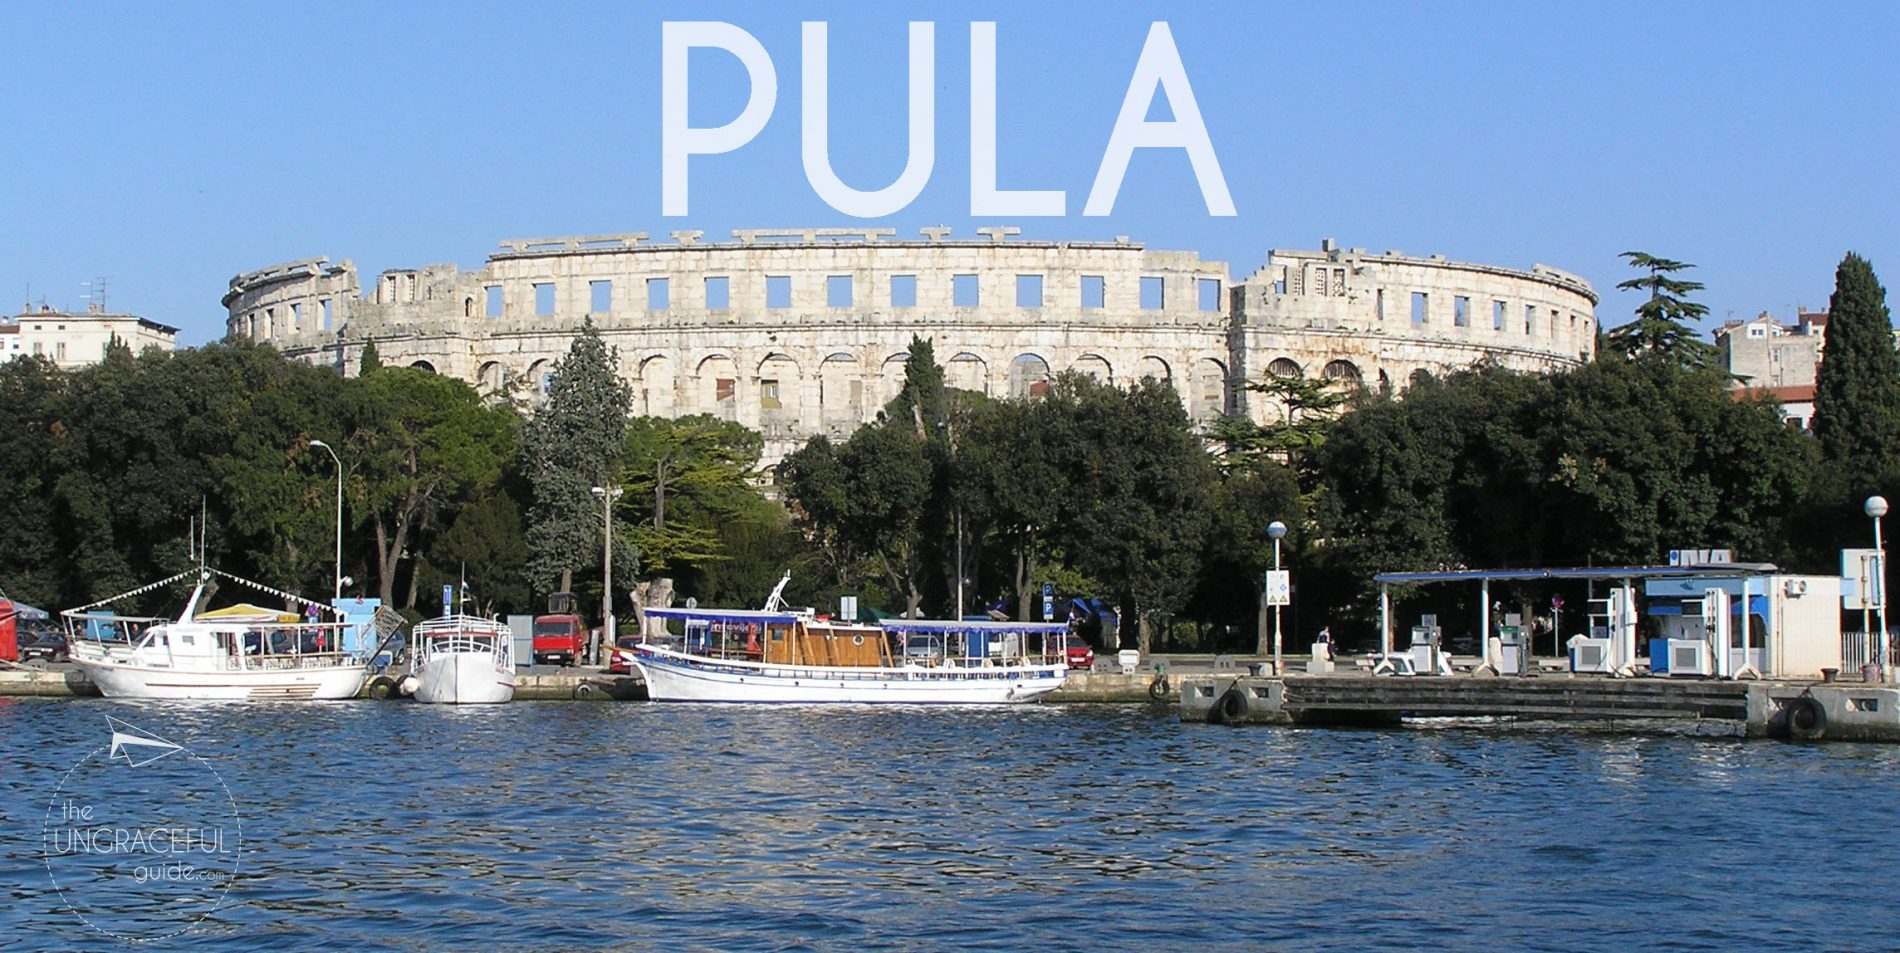 "<img src=""images/"" width=""800"" height=""600"" alt=""pula - PULA - The 3000 Year Old City of Pula""> <img src=""images/"" width=""800"" height=""600"" alt=""the ungraceful guide - PULA - The Ungraceful Guide"">"